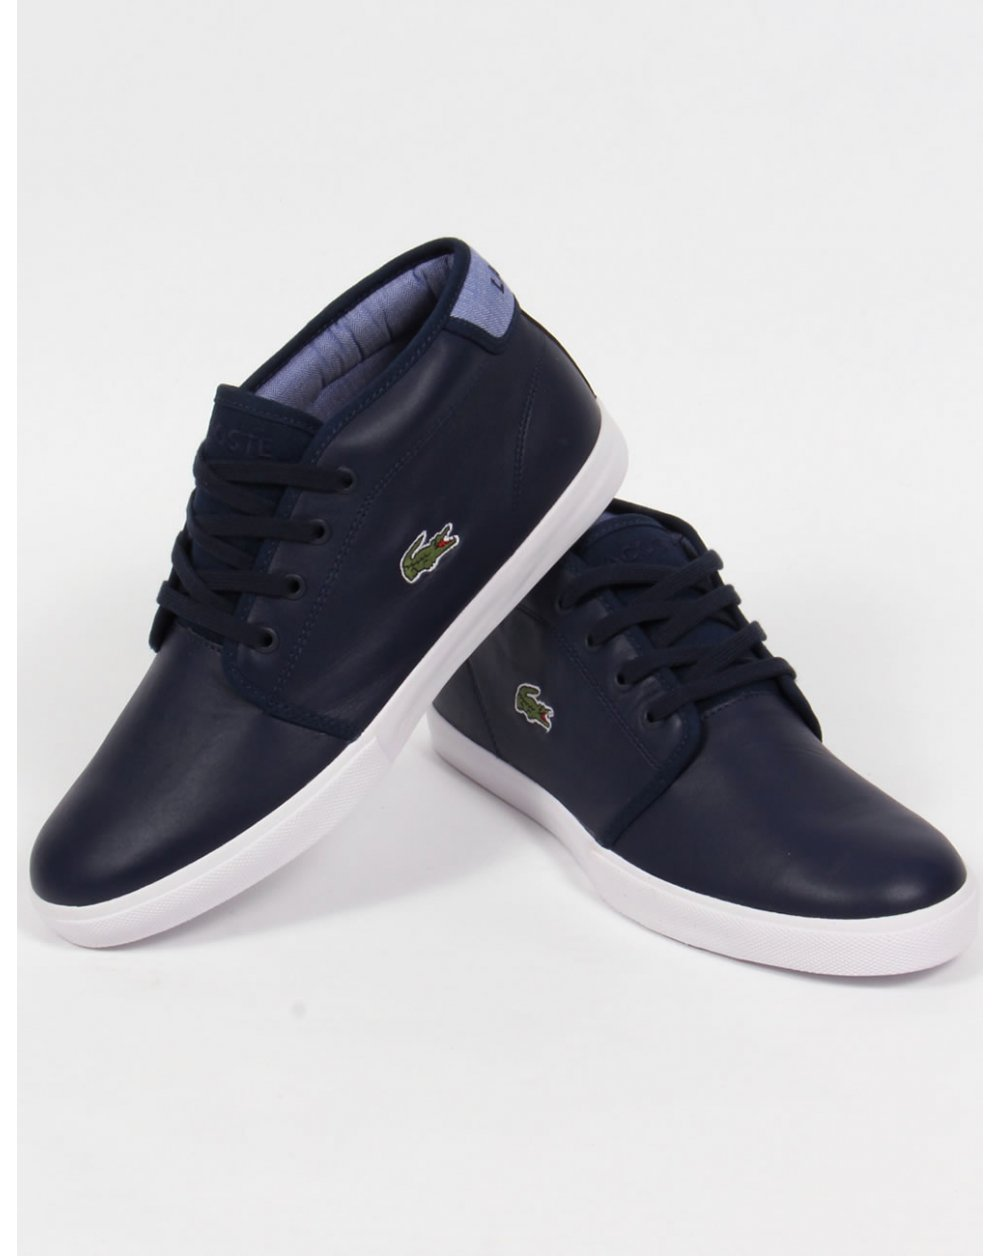 lacoste ampthill leather trainers navy bluebootsshoes